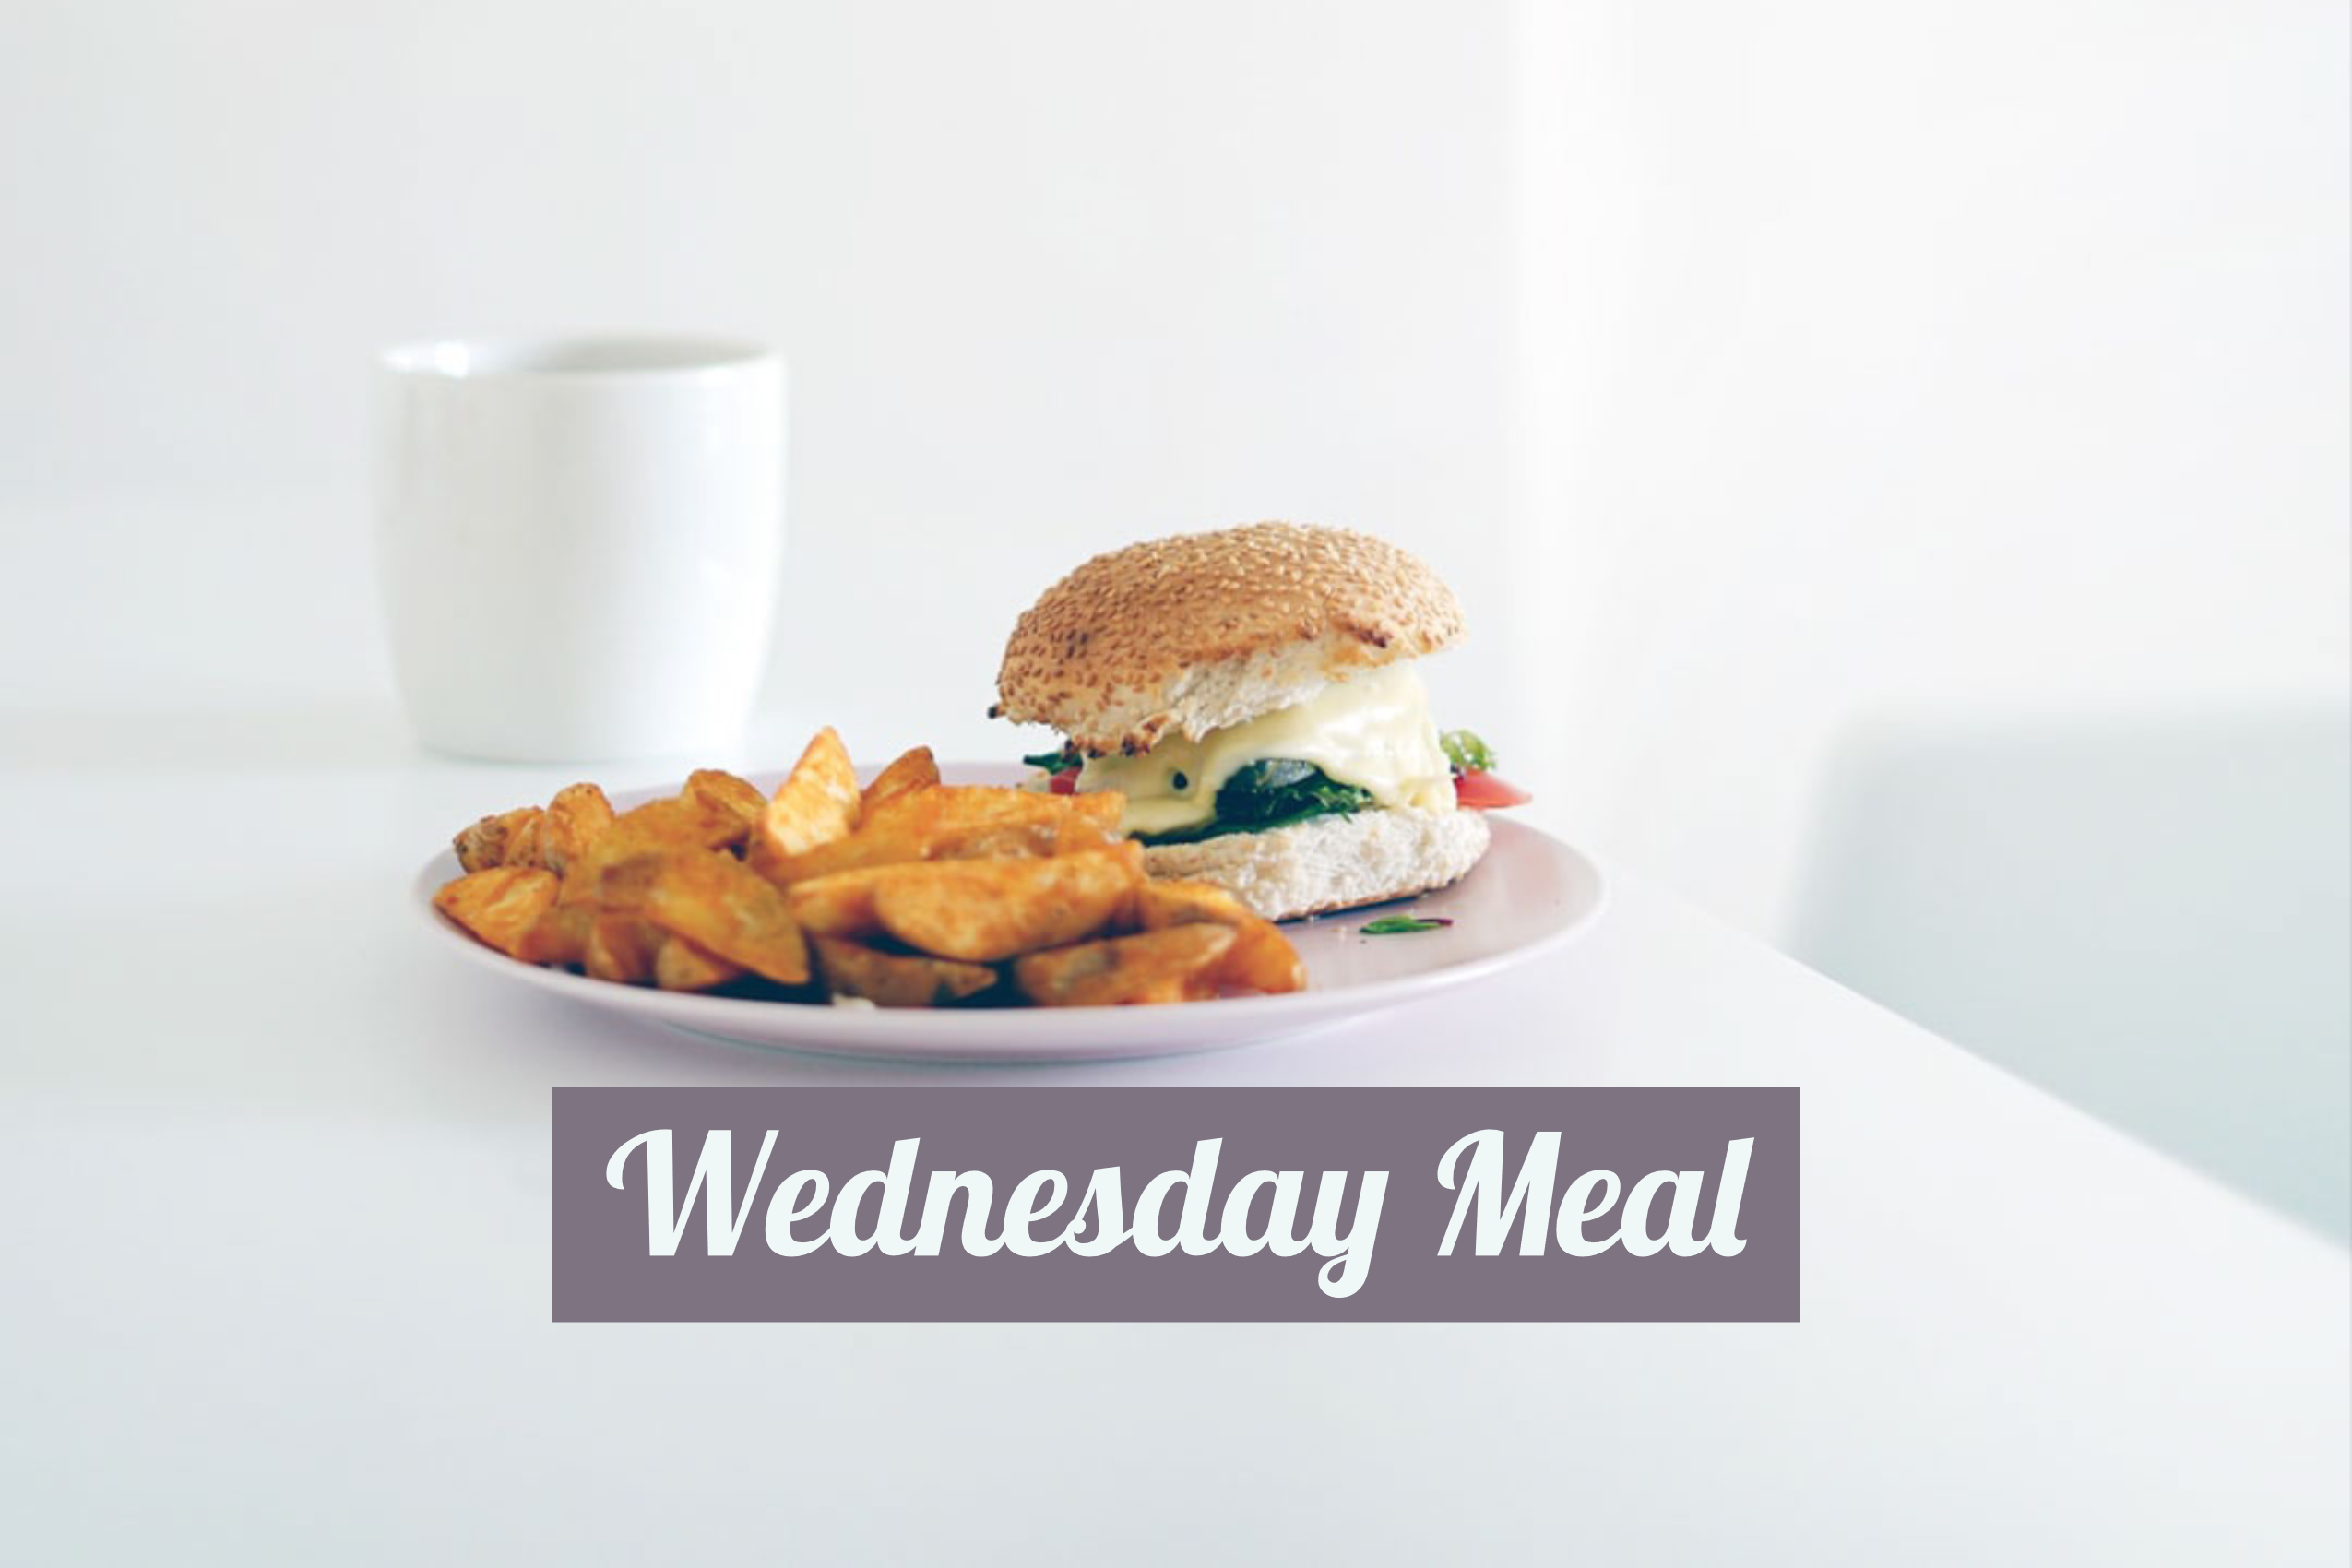 Wednesday Meal